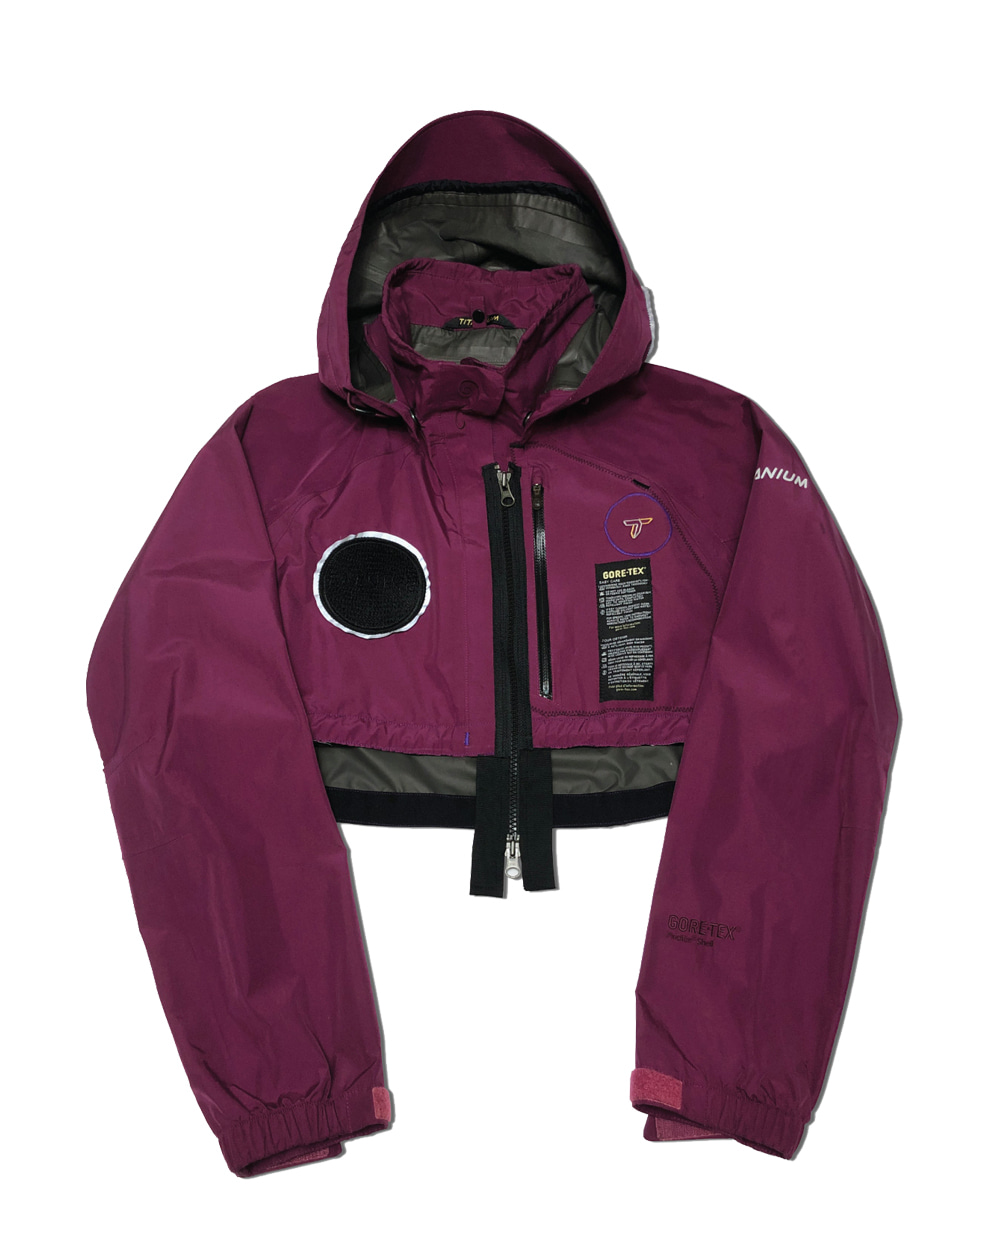 GOOD NEWS OUTDOOR CROP JACKET (Purple)